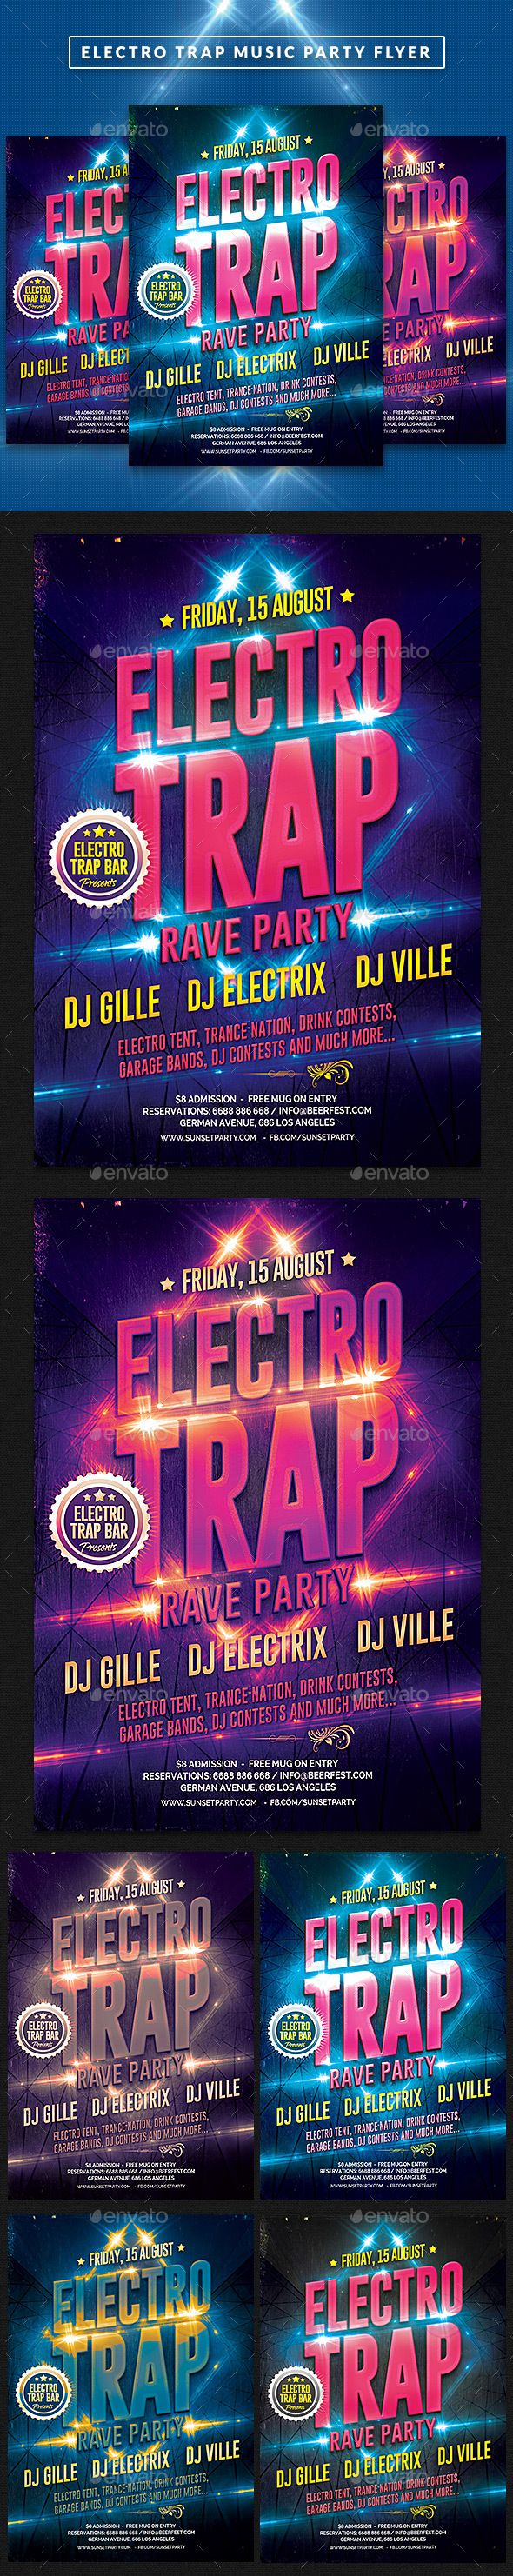 Circulaire Electro Trap Music Party   – music lettering